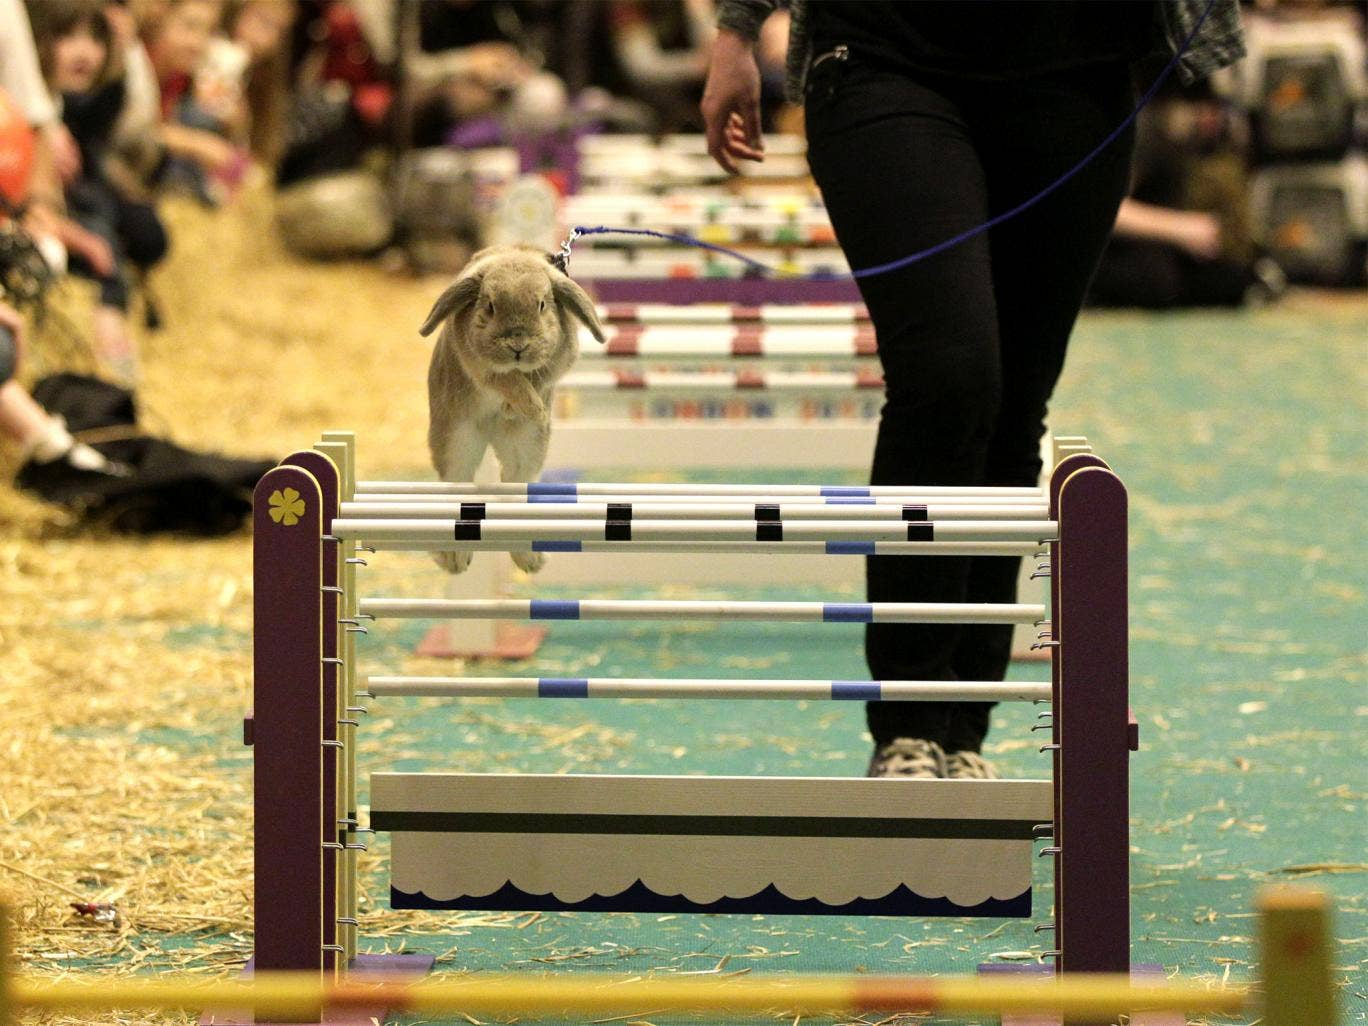 A show jumping Rabbit clears a hurdle at the London Pet Show